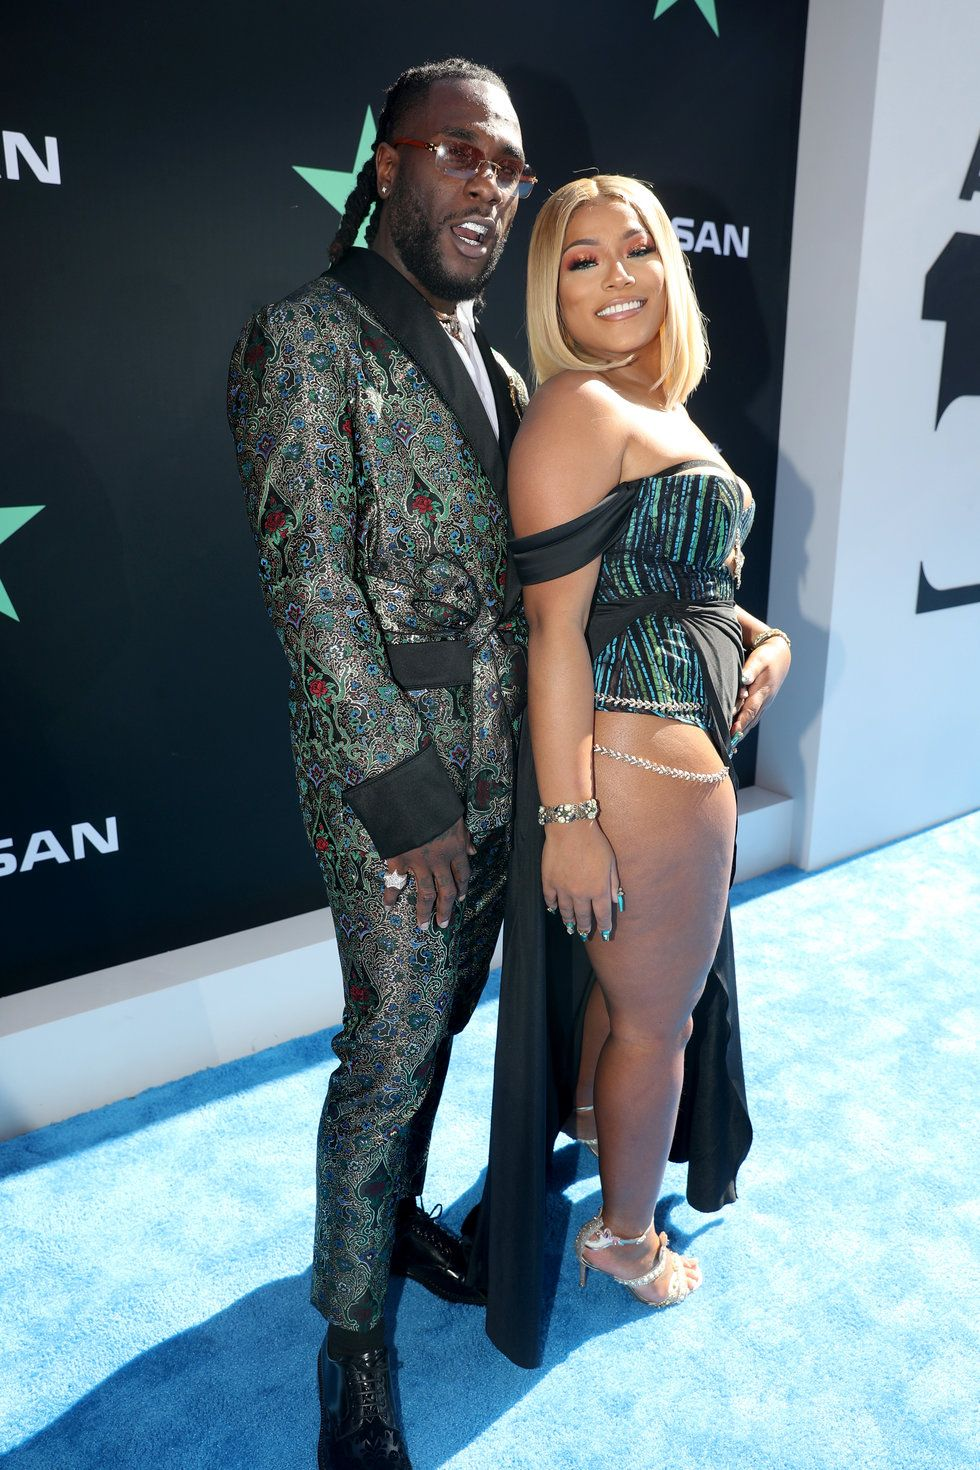 Africa at the BET Awards 2019: Dispatches from the Blue